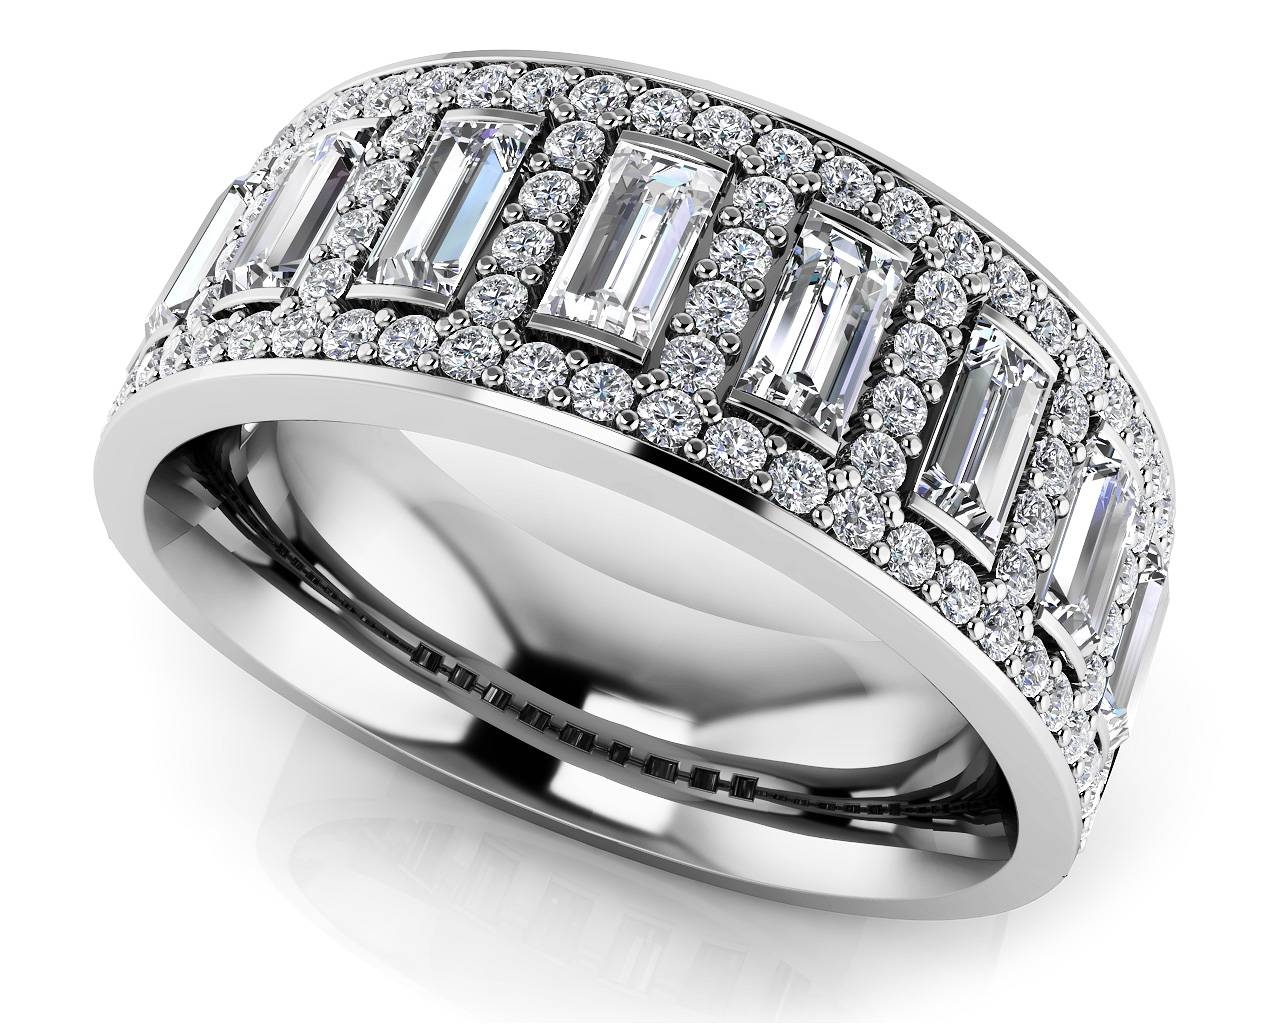 Design Your Own Diamond Anniversary Ring & Eternity Ring For Recent 10th Anniversary Rings (Gallery 10 of 15)